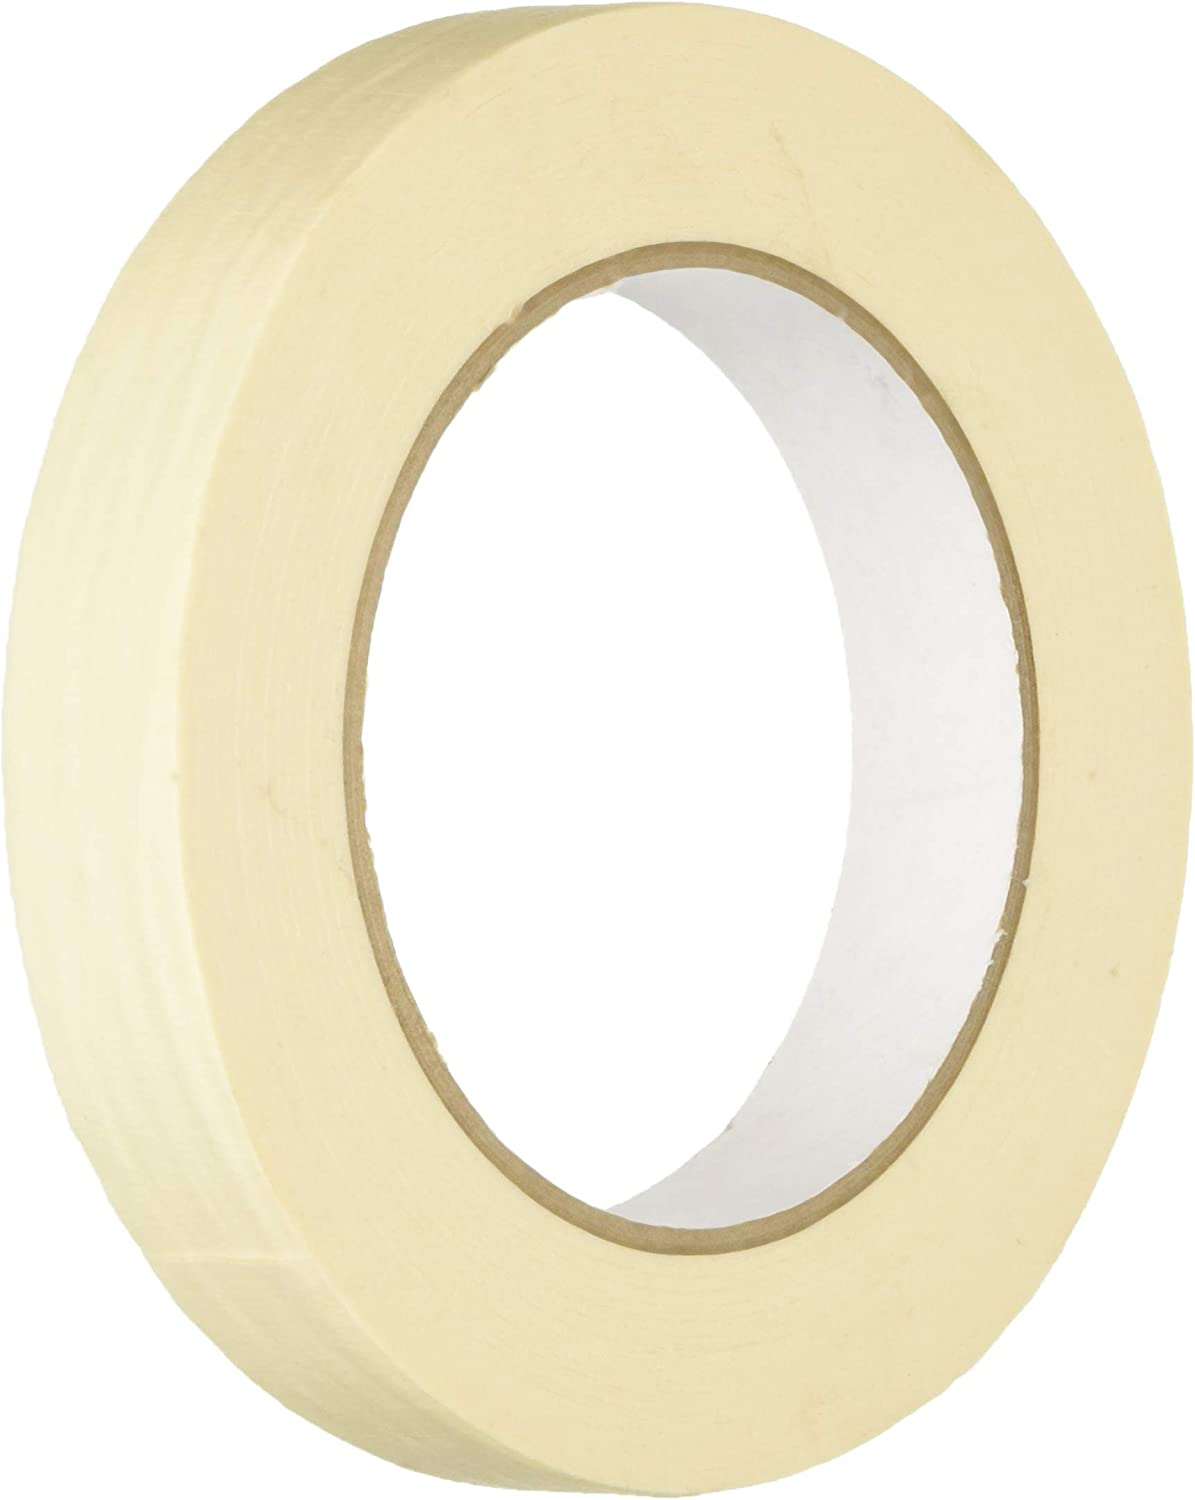 Alvin 3 4 sale Inch Drafting Max 53% OFF Masking for Tape Gentle Painting